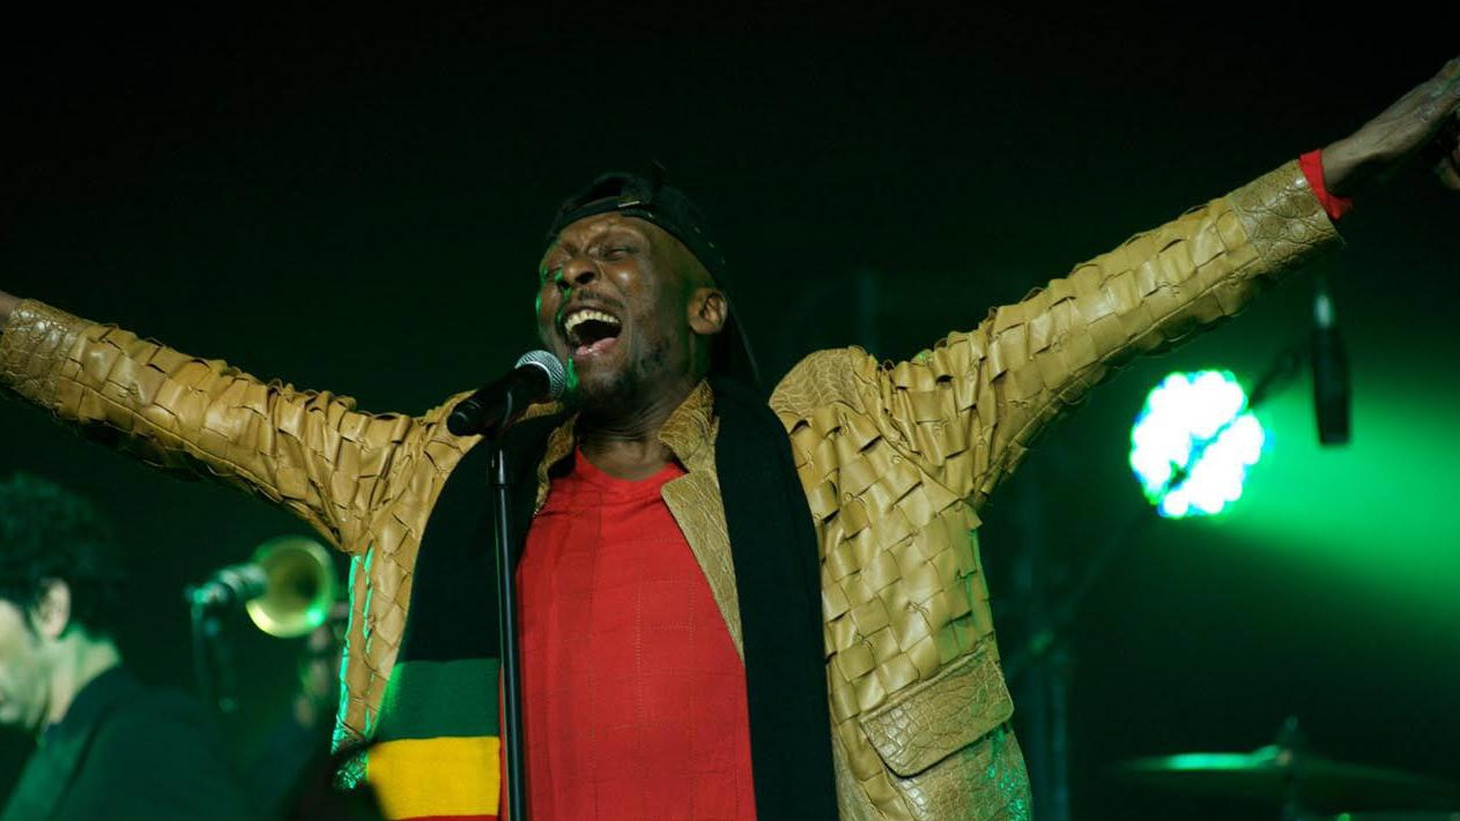 Reggae great Jimmy Cliff is back and about to release a brand new EP recorded on vintage gear dating back to his days in Kingston. It was produced by Rancid's Tim Armstrong and features Jimmy's band of longtime...